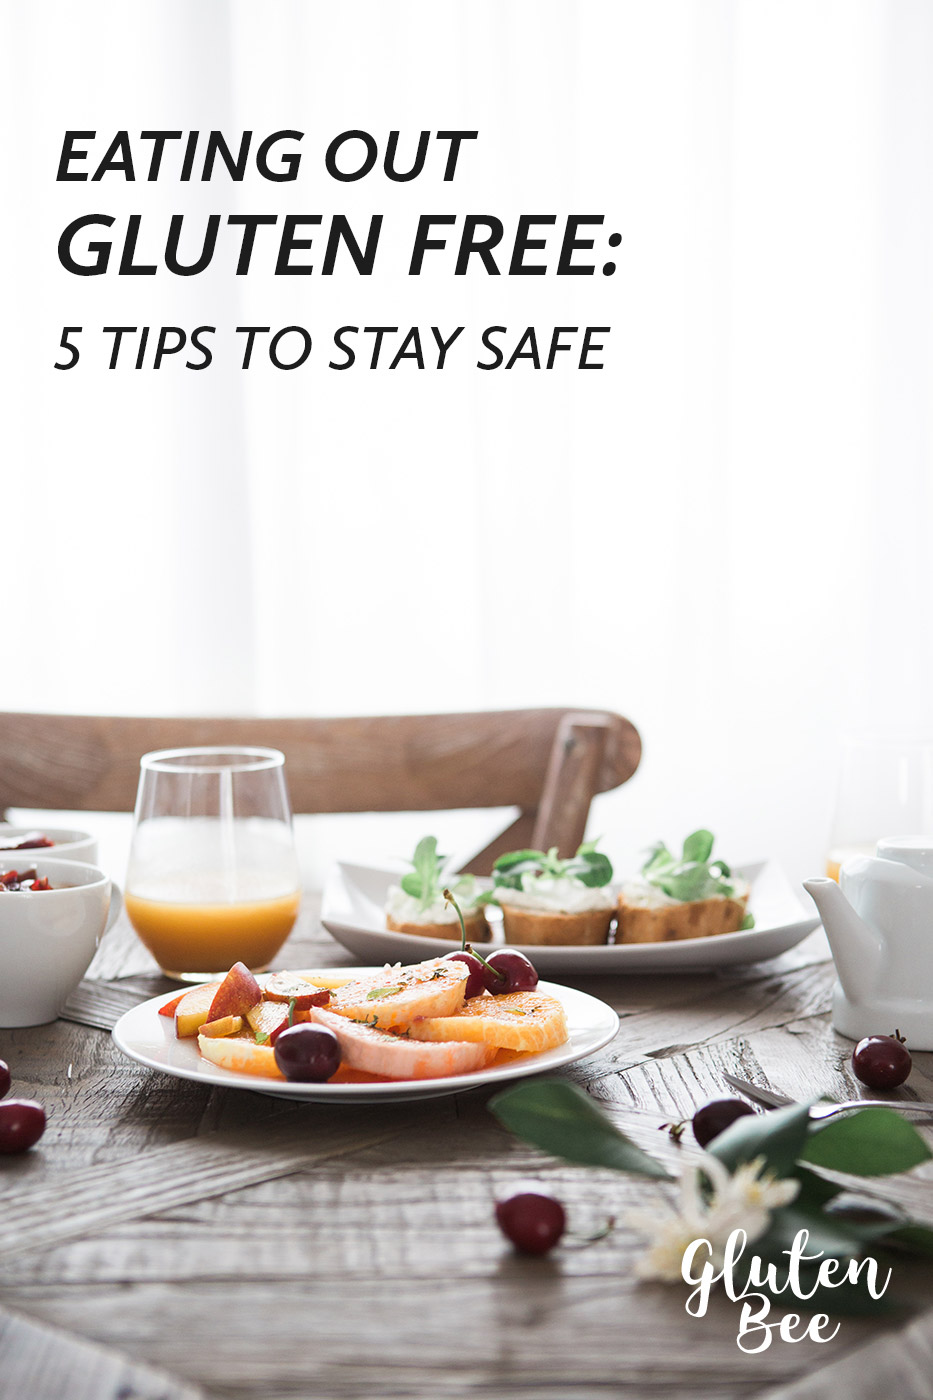 Tips for Eating Out Gluten Free. Ways you can stay safe.